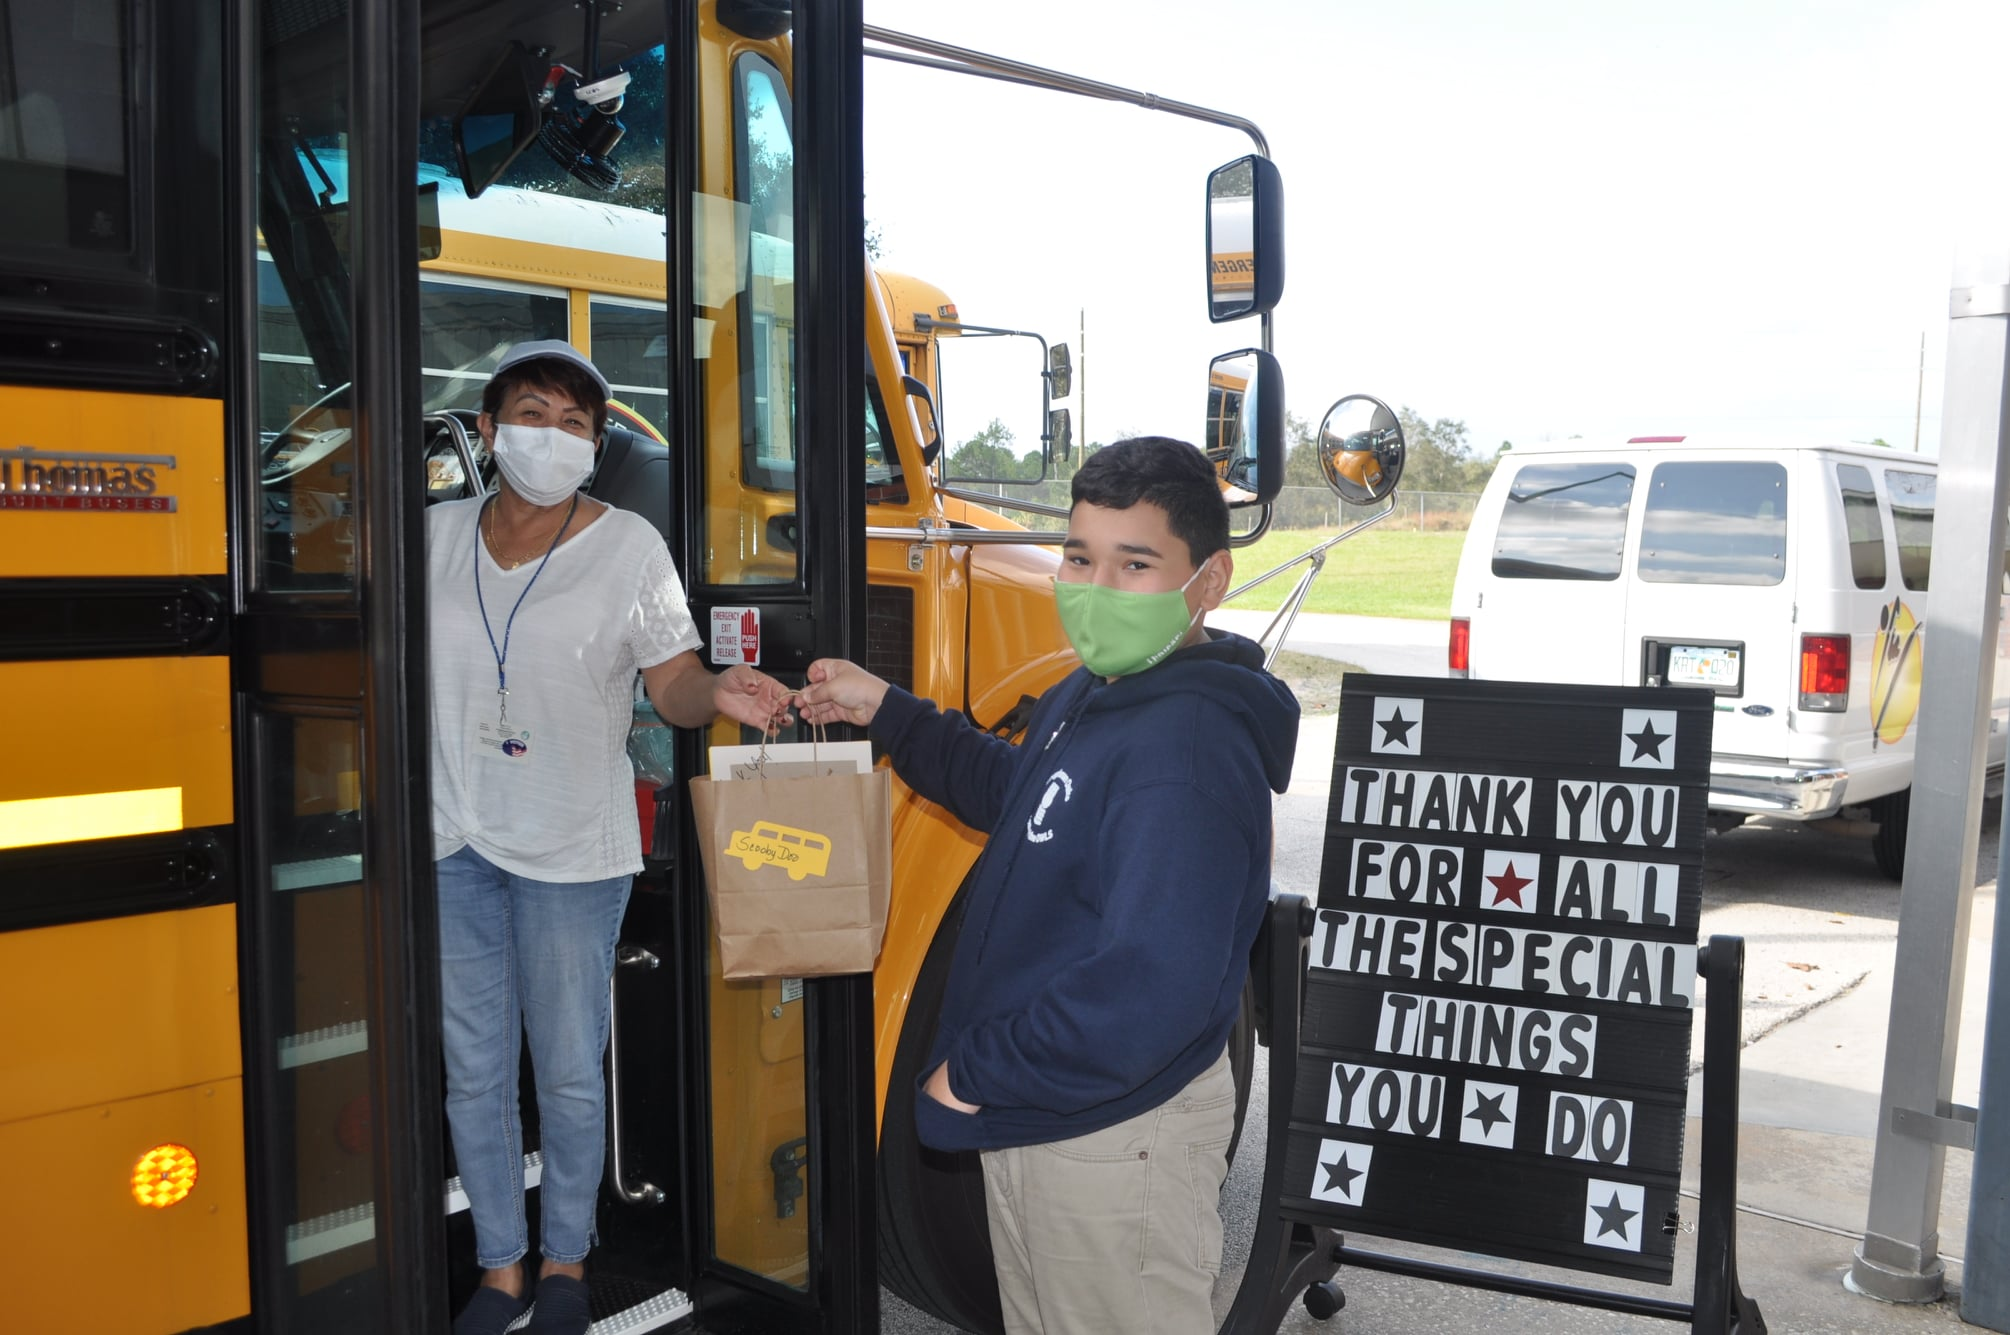 Bus driver and student at Loughman Oaks Elementary